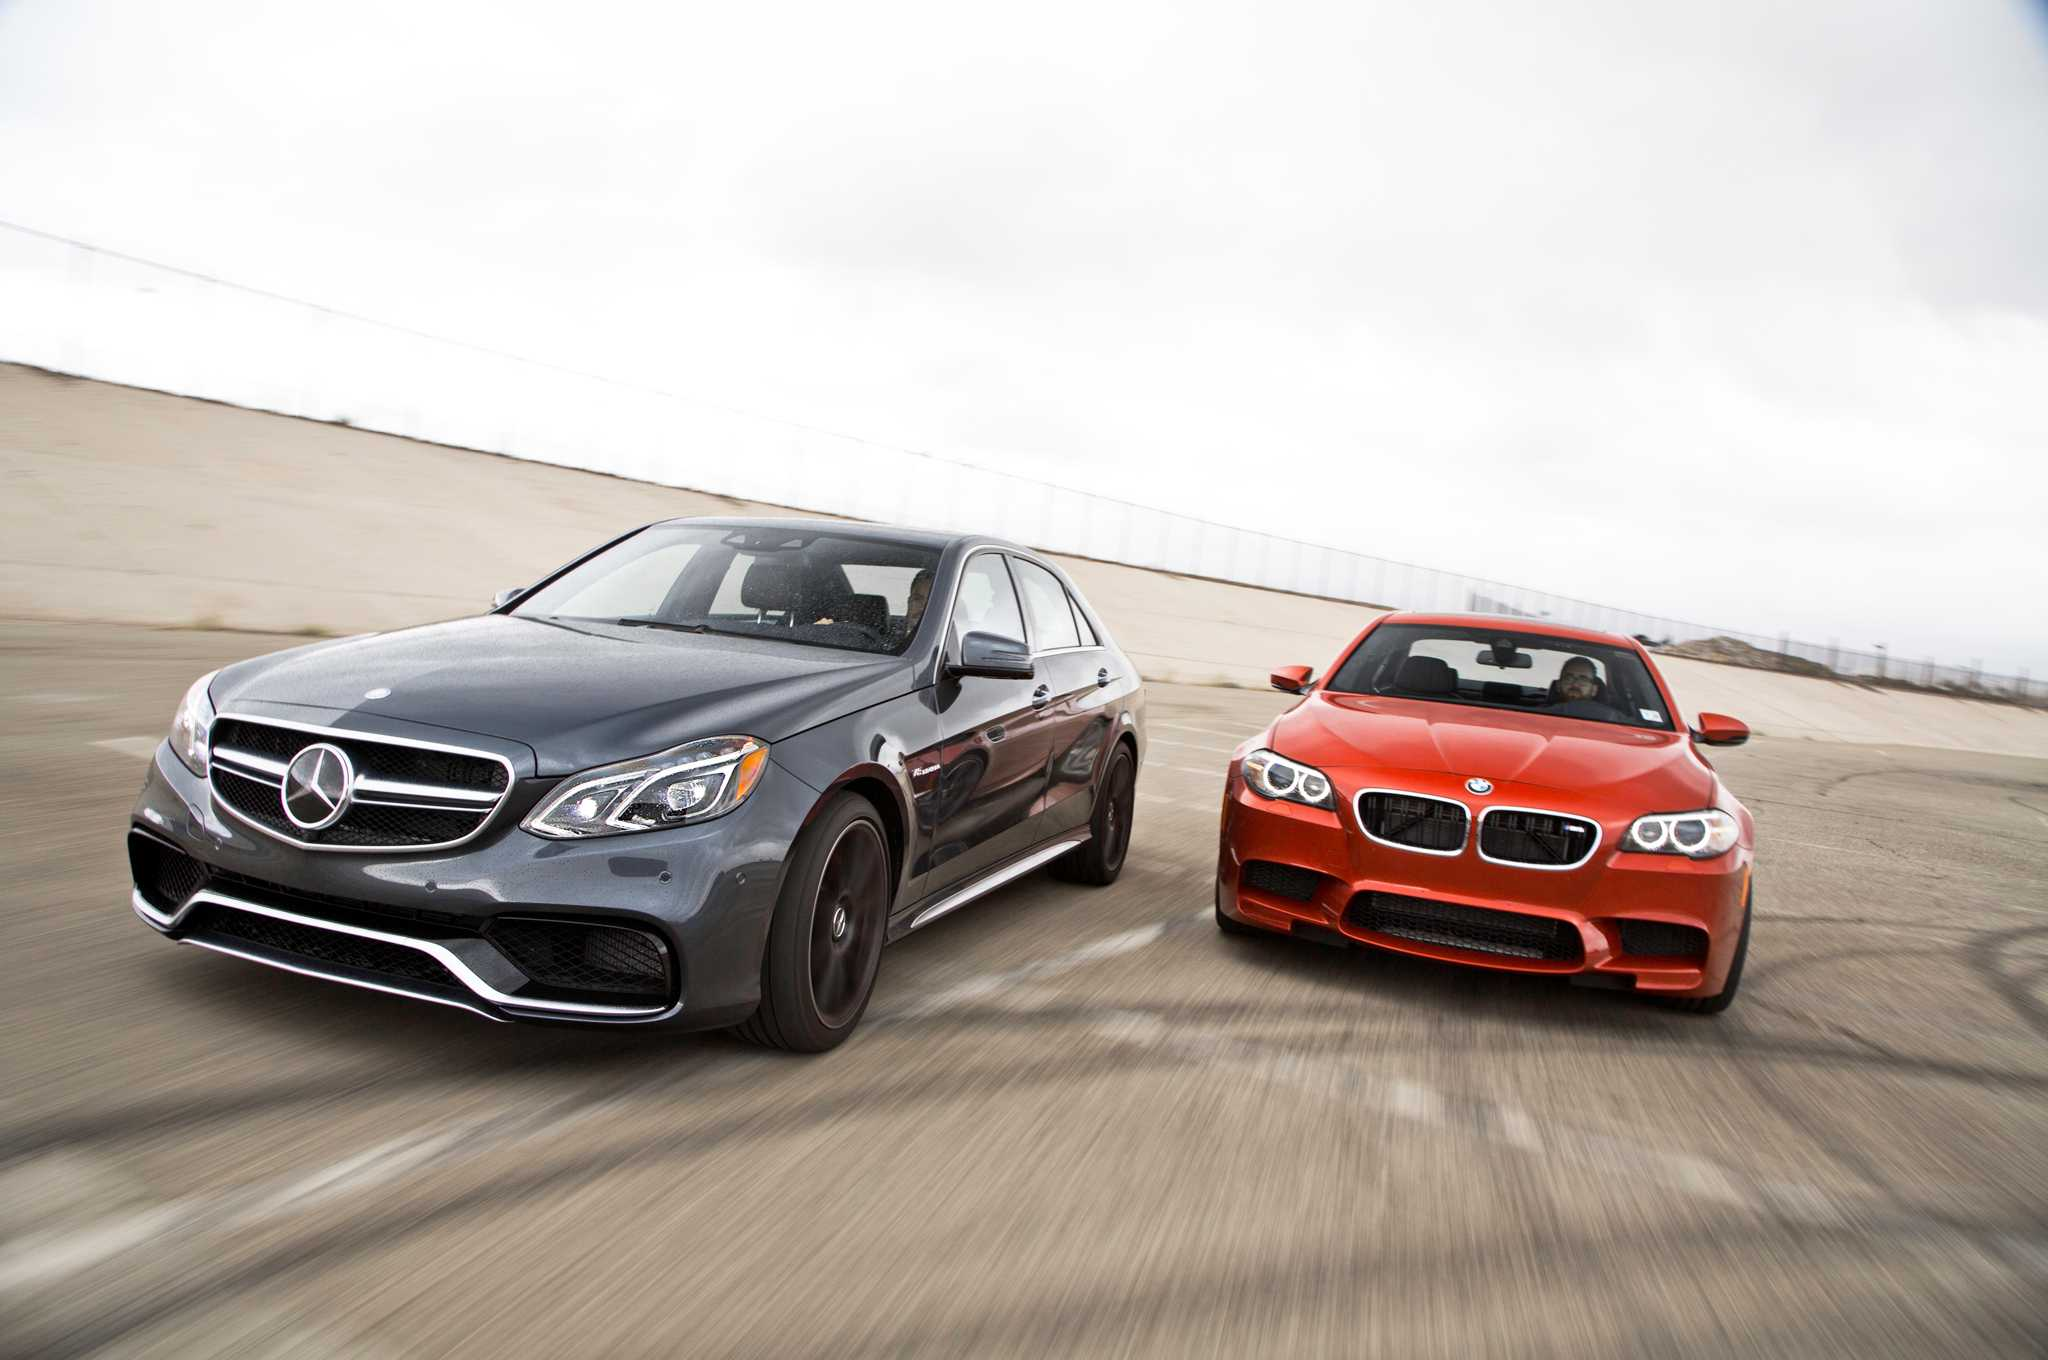 Mercedes Benz E63 AMG Arrives to Take on 2017 BMW M5